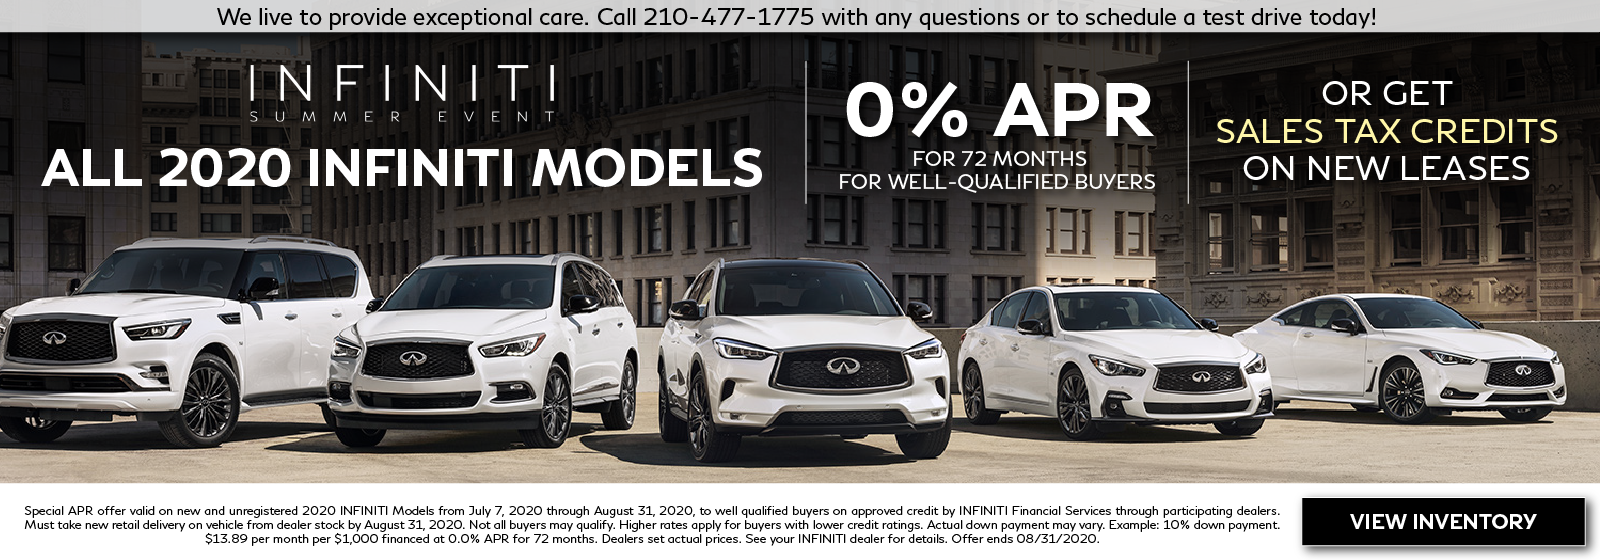 INFINITI Summer Event. 0% APR for up to 72 months Purchase offer. For well-qualified buyers. Restrictions may apply. See retailer for complete details. Offer ends August 31, 2020. Tax credits available on New INFINITI Leases!